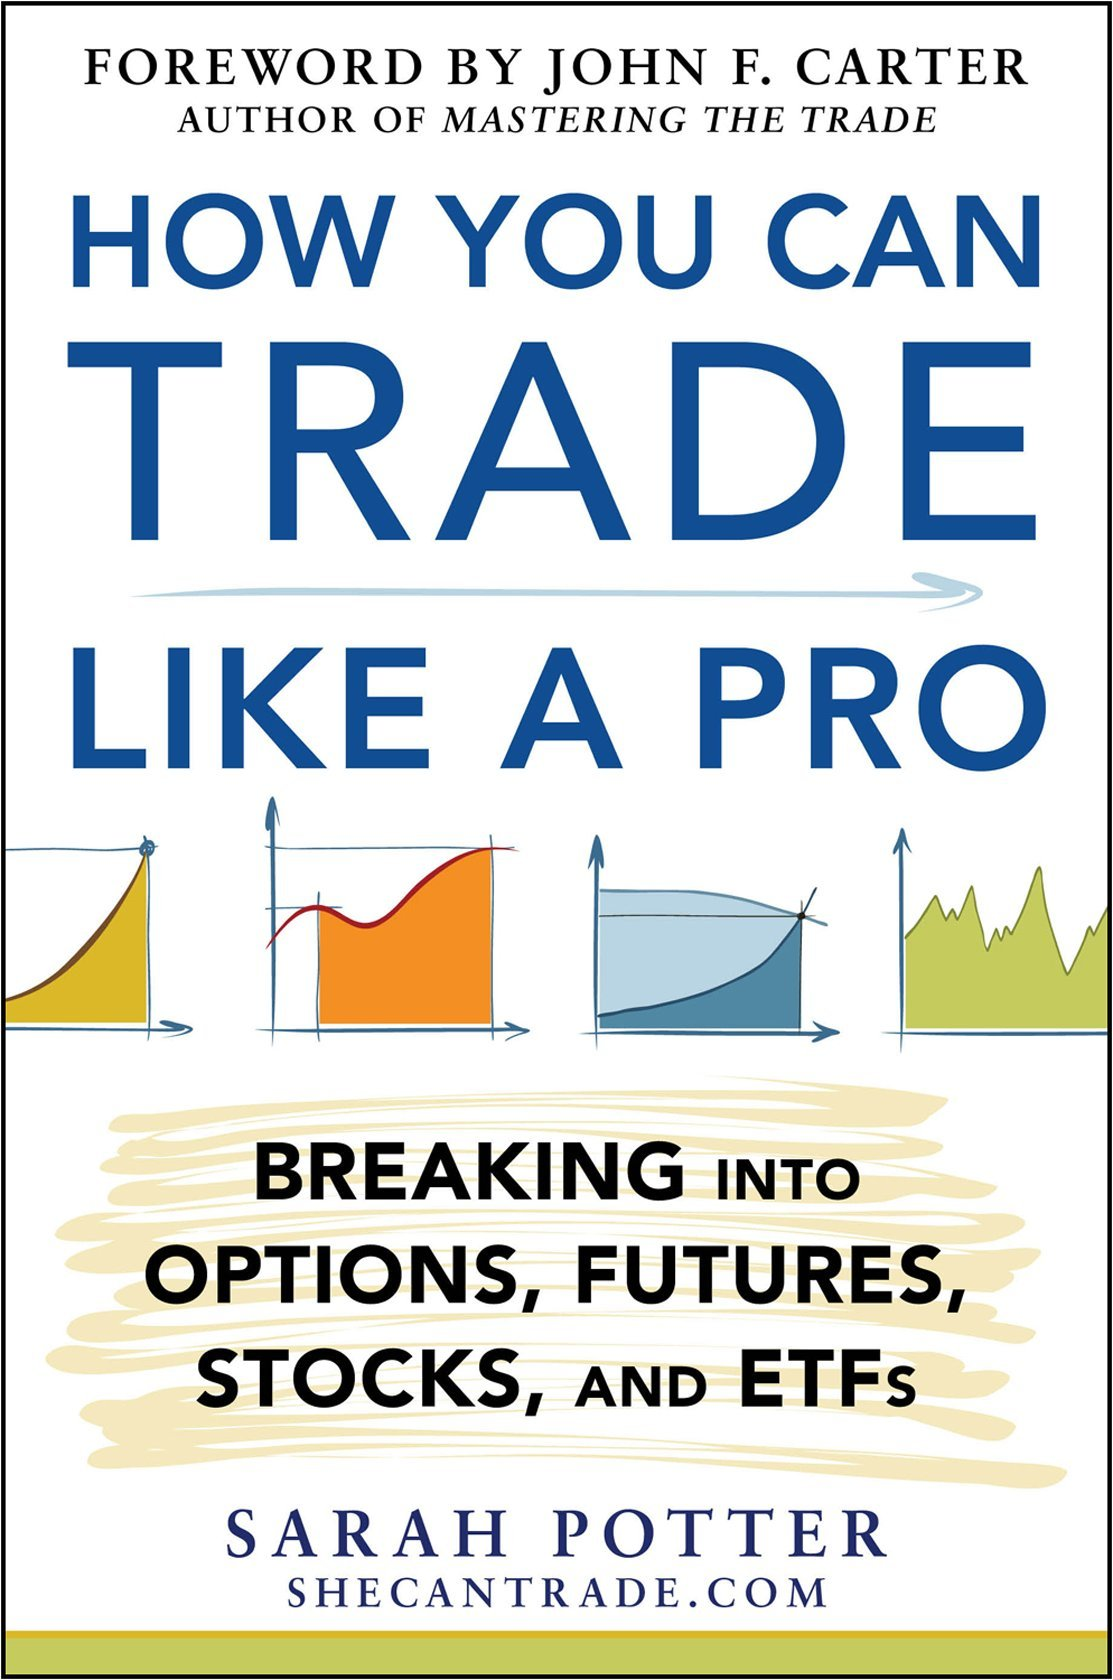 How to trade options like a pro